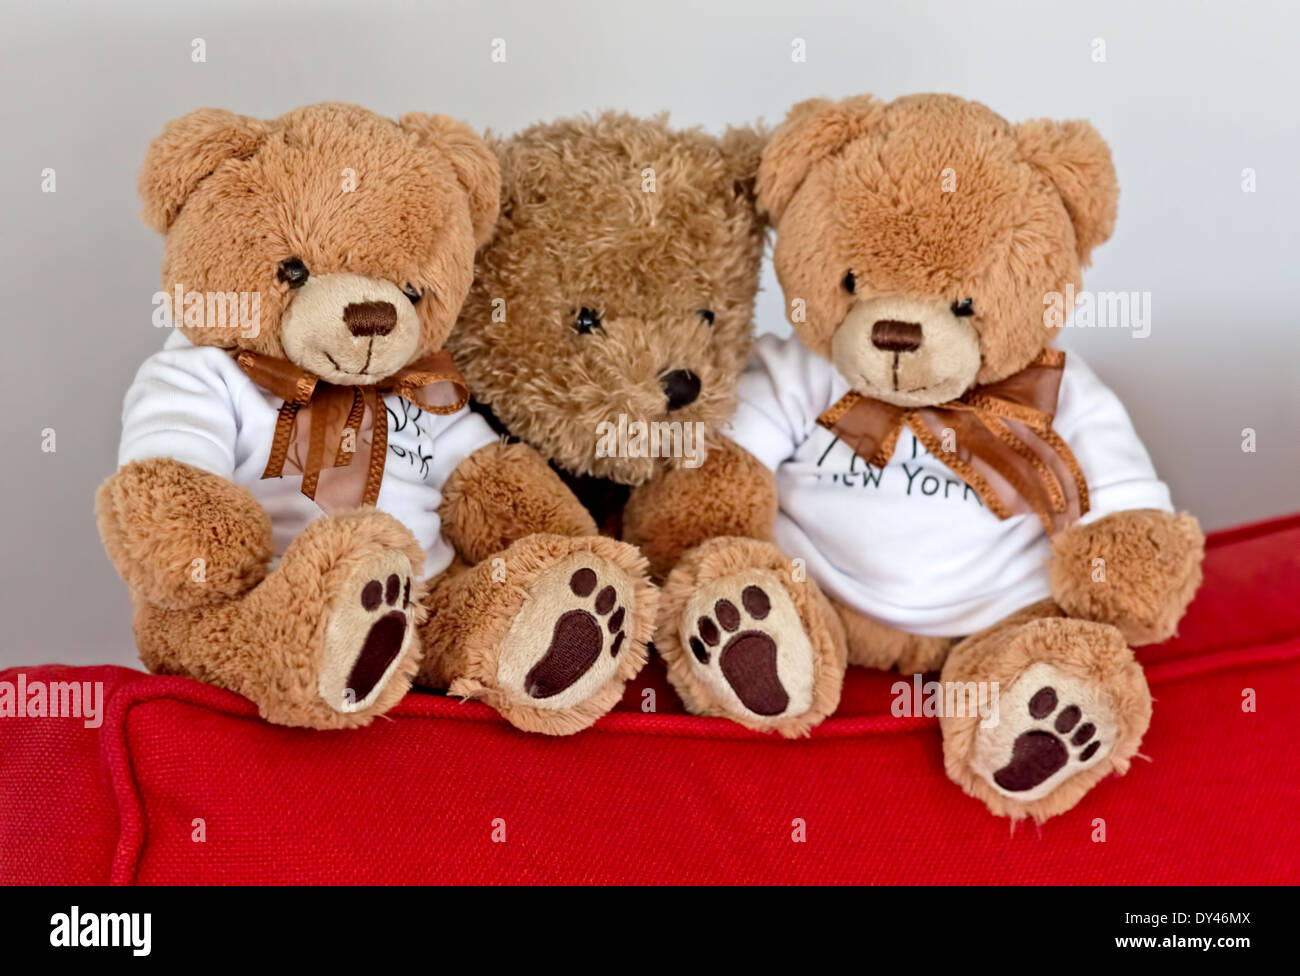 Collection of cuddly teddy bears in a seated position on a red couch. - Stock Image